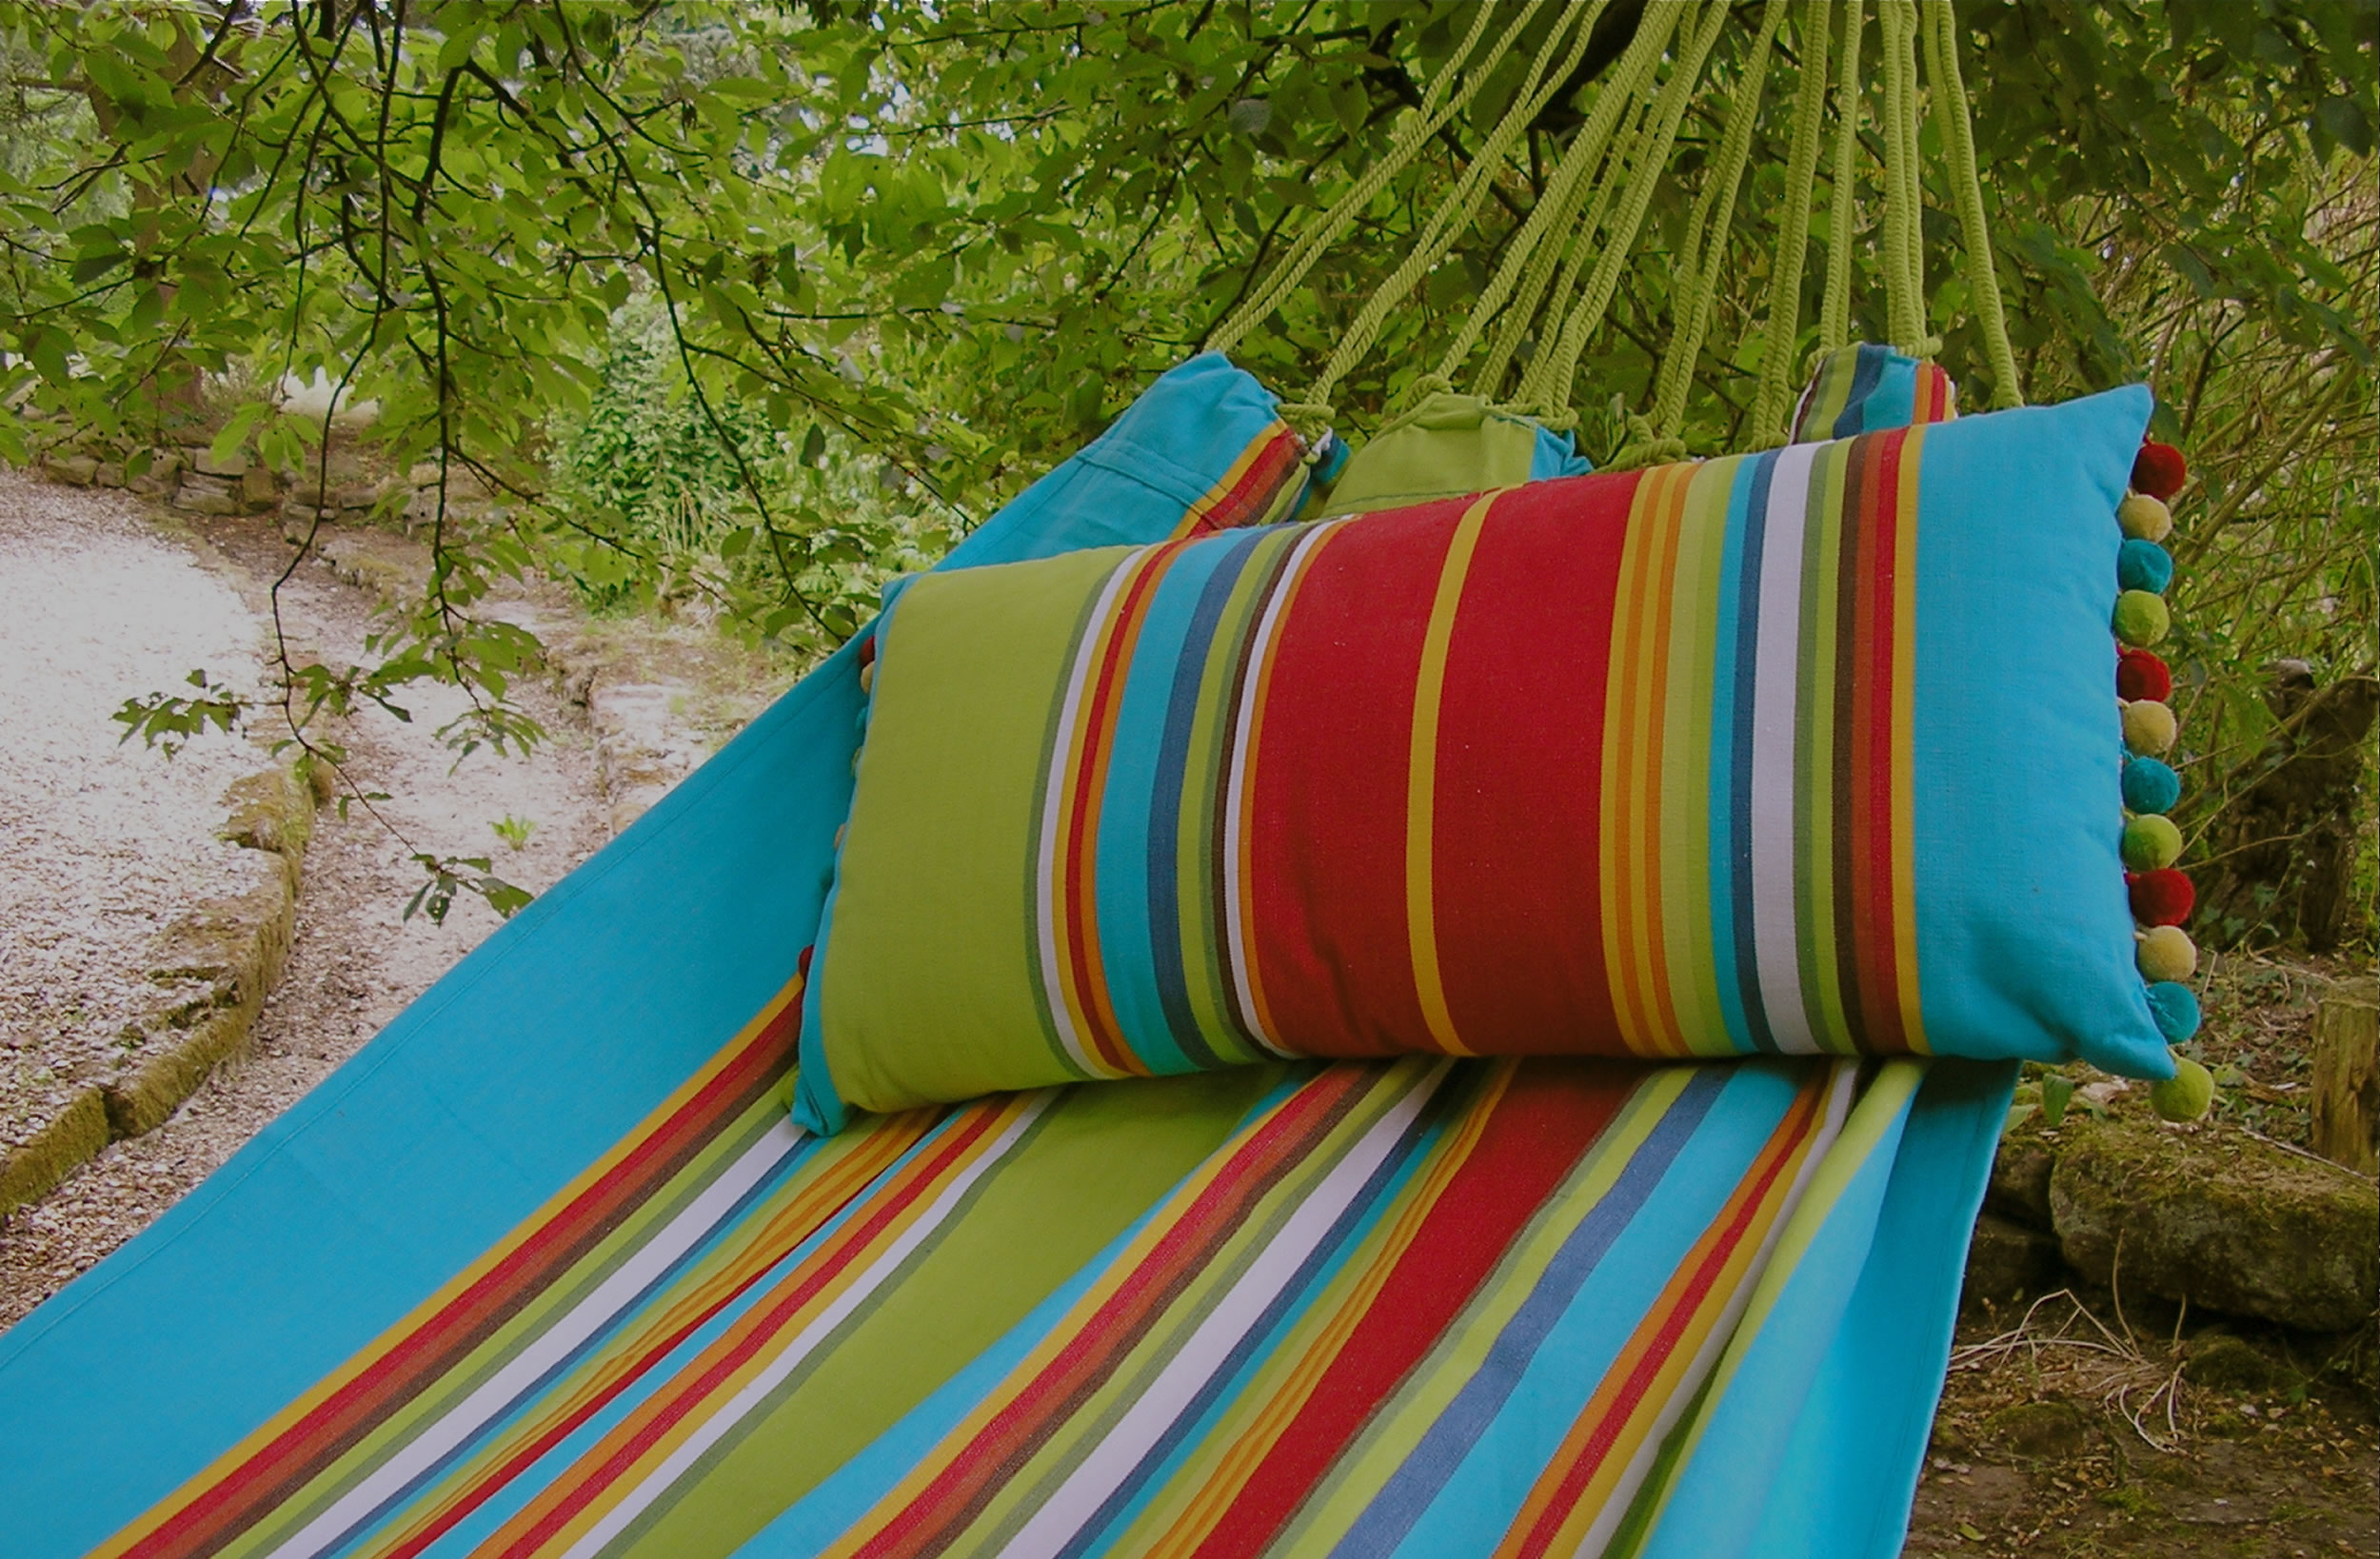 Turquoise, Red and Lime Green Striped Hammock